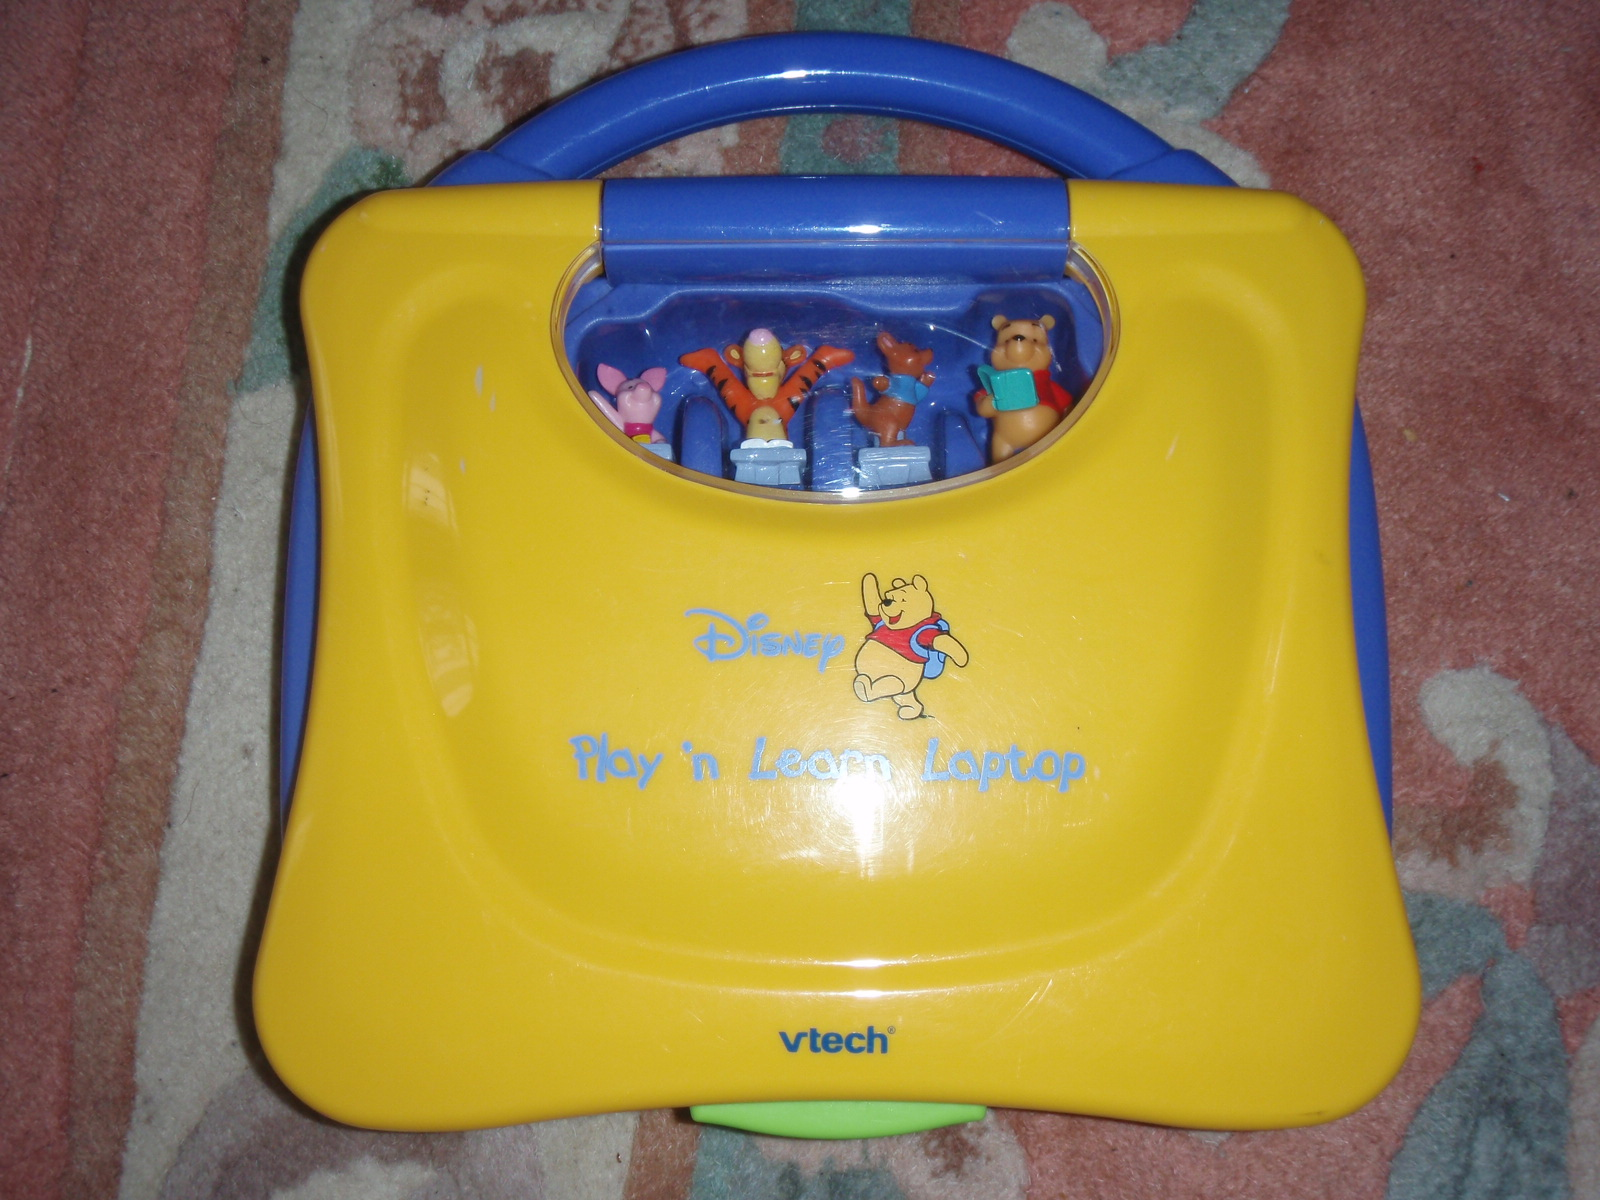 Vtech Winnie the Pooh Press n Play Laptop User Manual